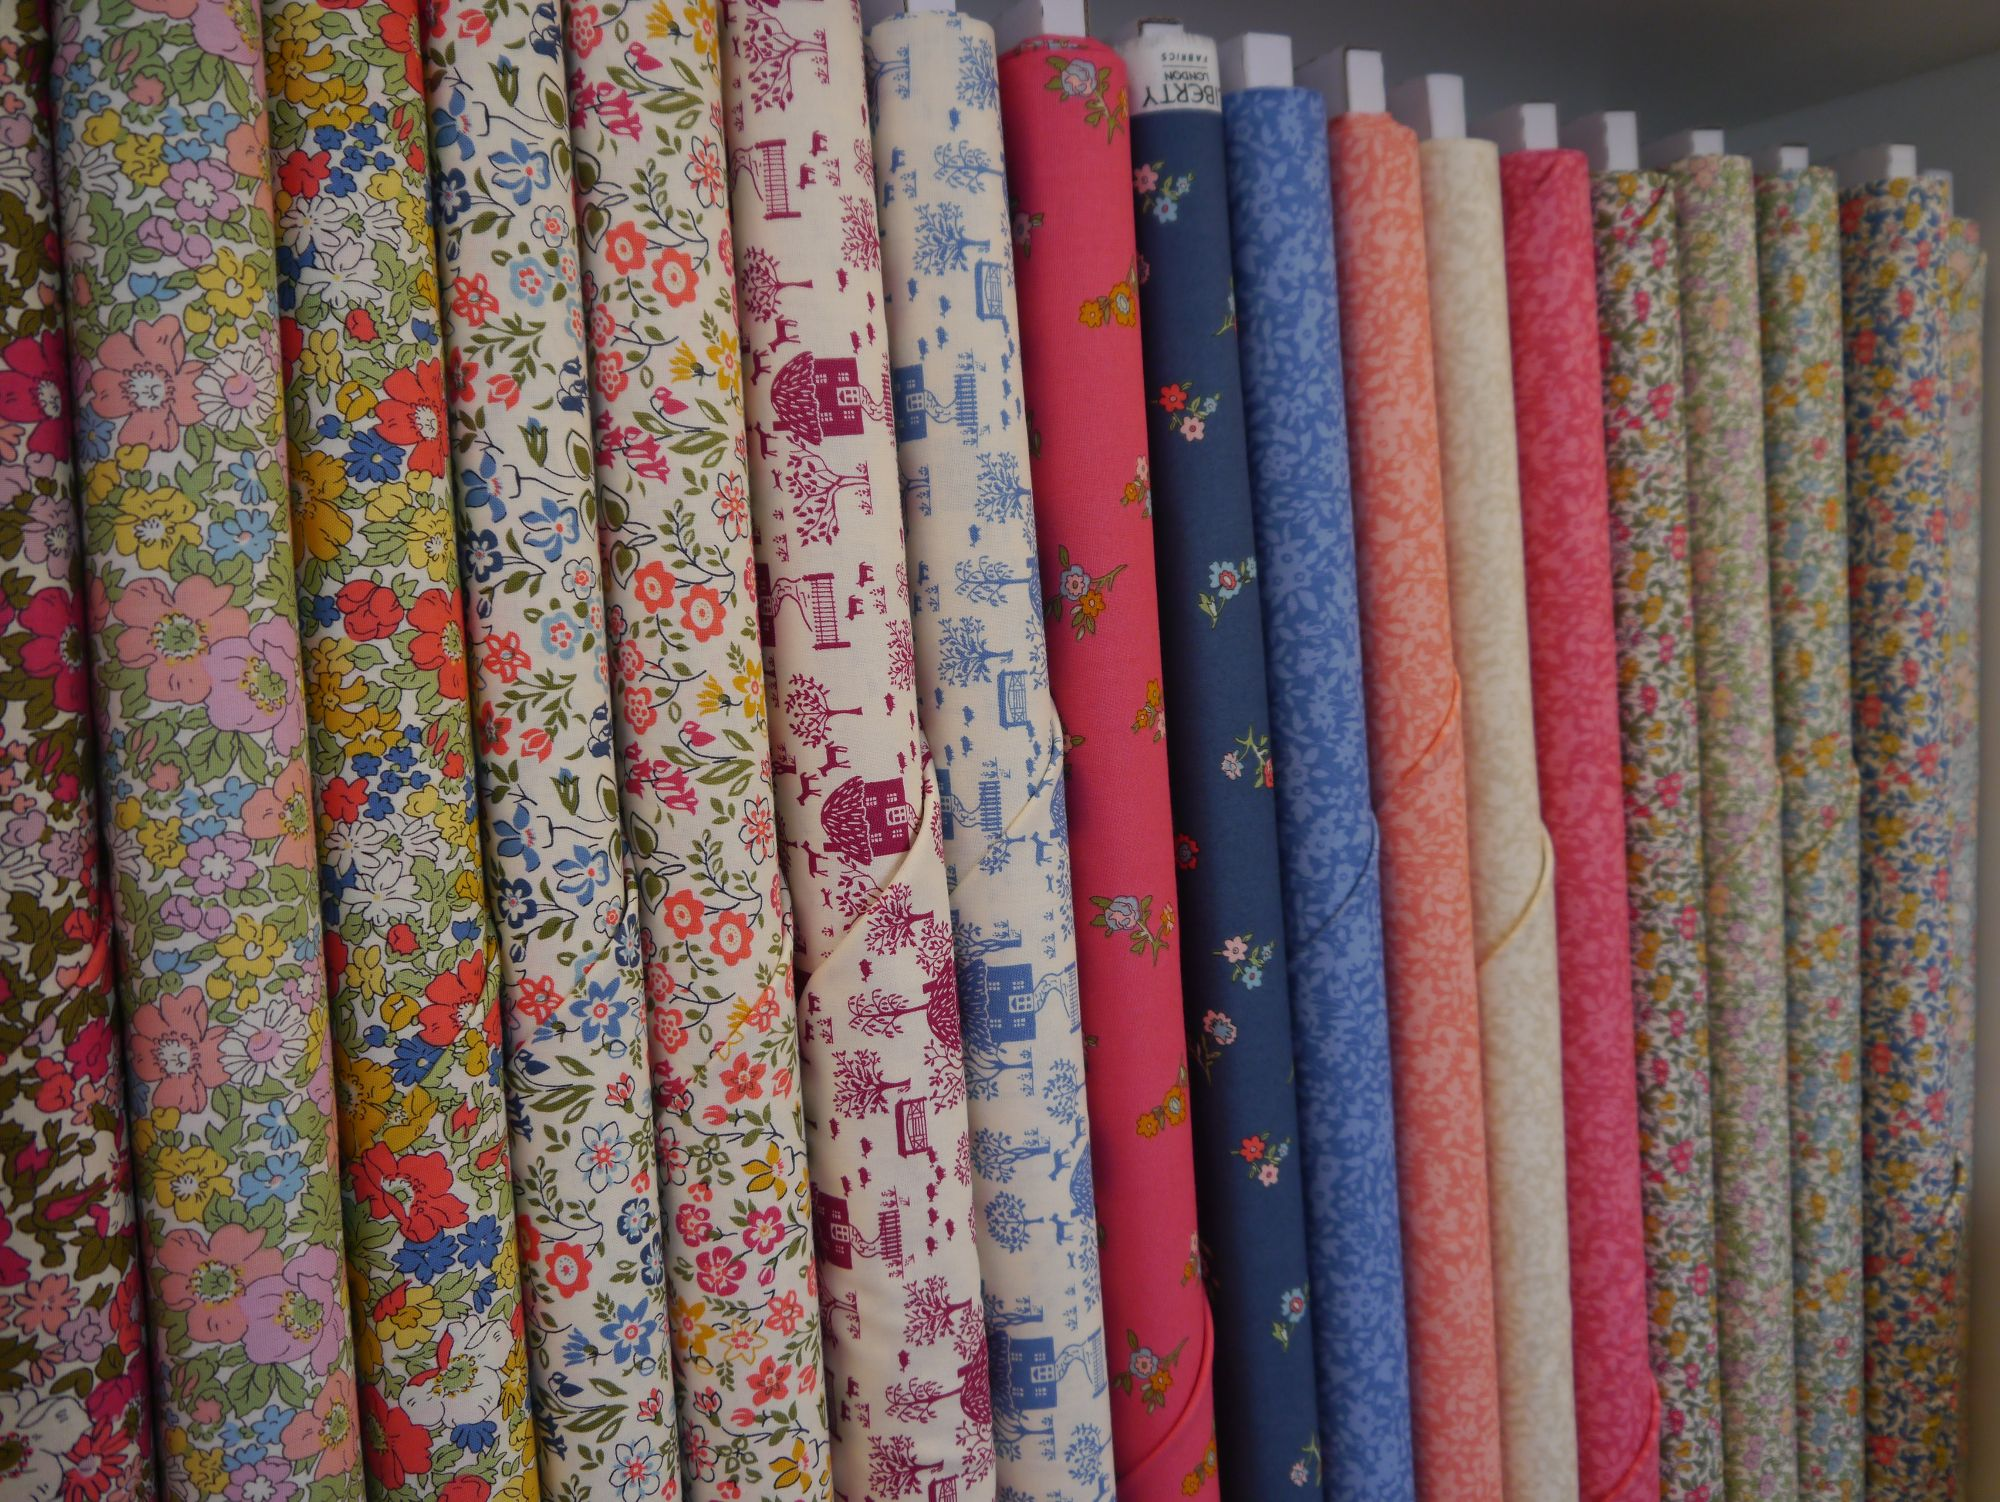 Apporved Stockist Liberty Fabric